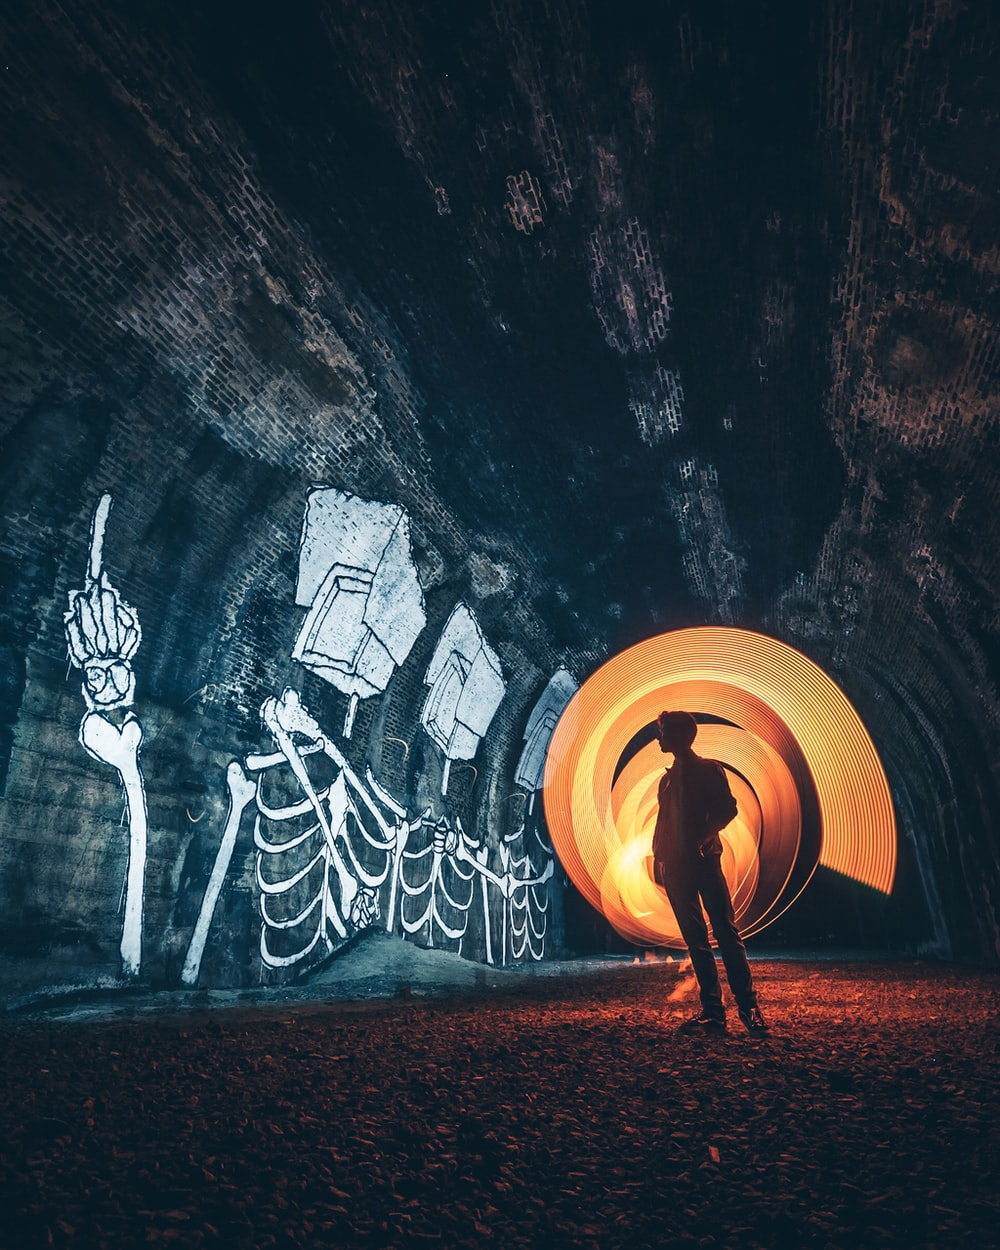 silhouette of person standing inside tunnel